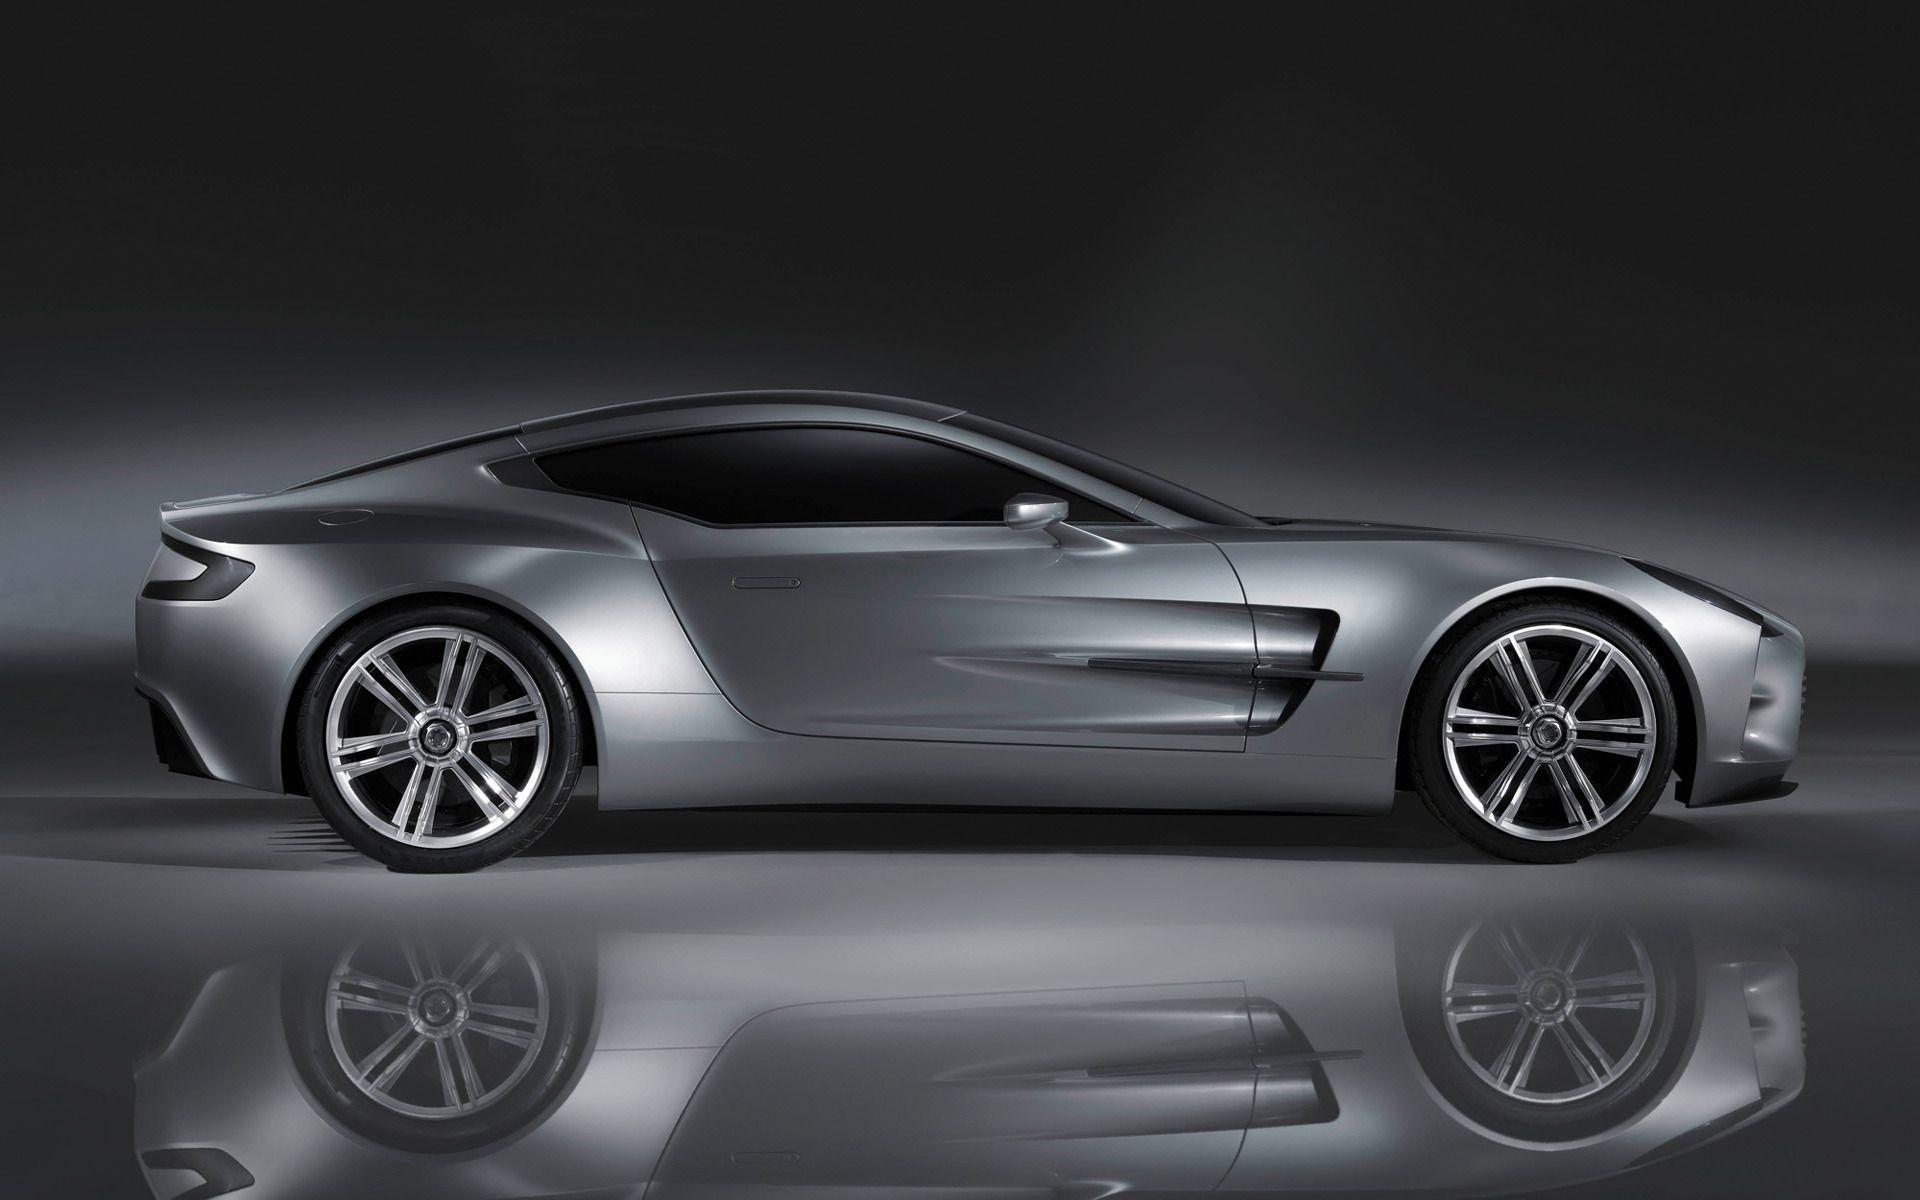 Aston Martin One 77 Pictures HQ Wallpaper - Back Wallpapers